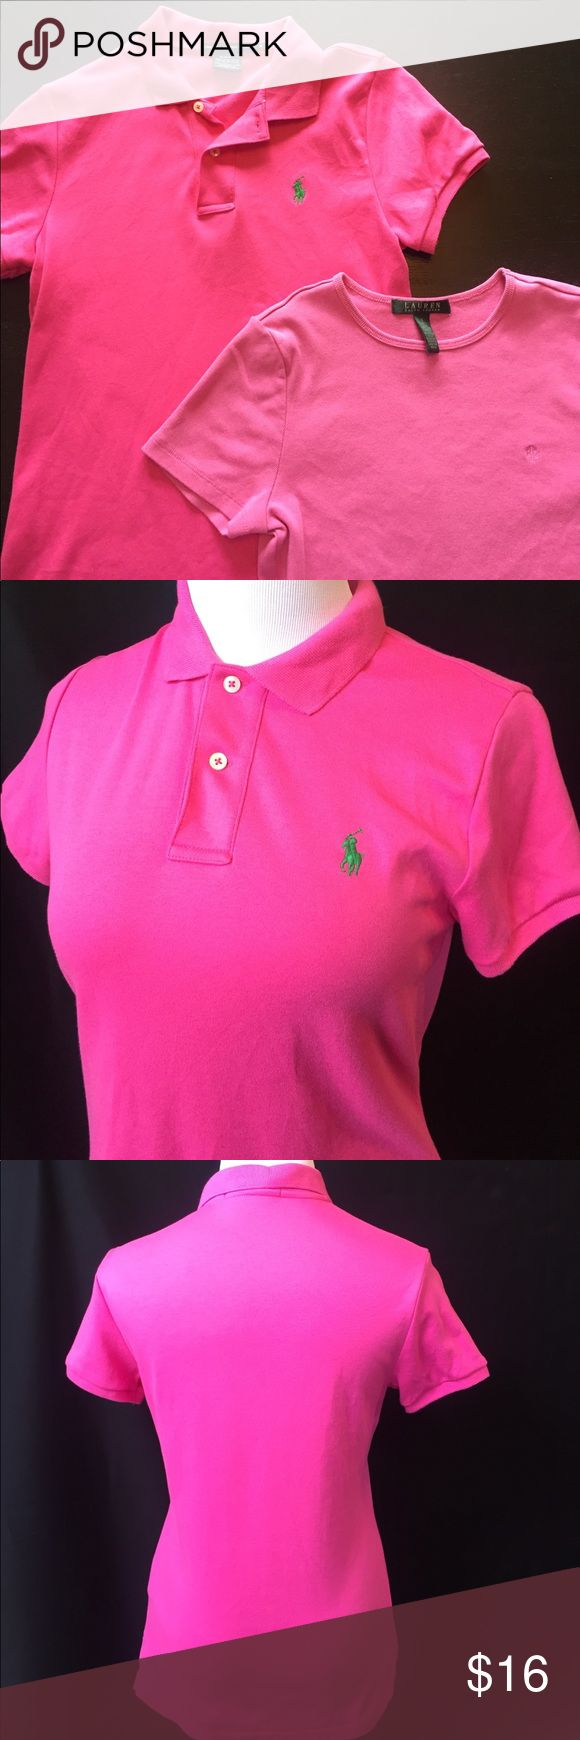 Ralph Lauren 2 pc pink shirt set Polo small fit 2 shirts, smoke free home. One is Ralph Lauren Sport and is a medium but fits like a small. One is Ralph Lauren and a small. Bundle and save! Fitted. Sold as a set. Polo By Ralph Lauren Tops Tees - Short Sleeve